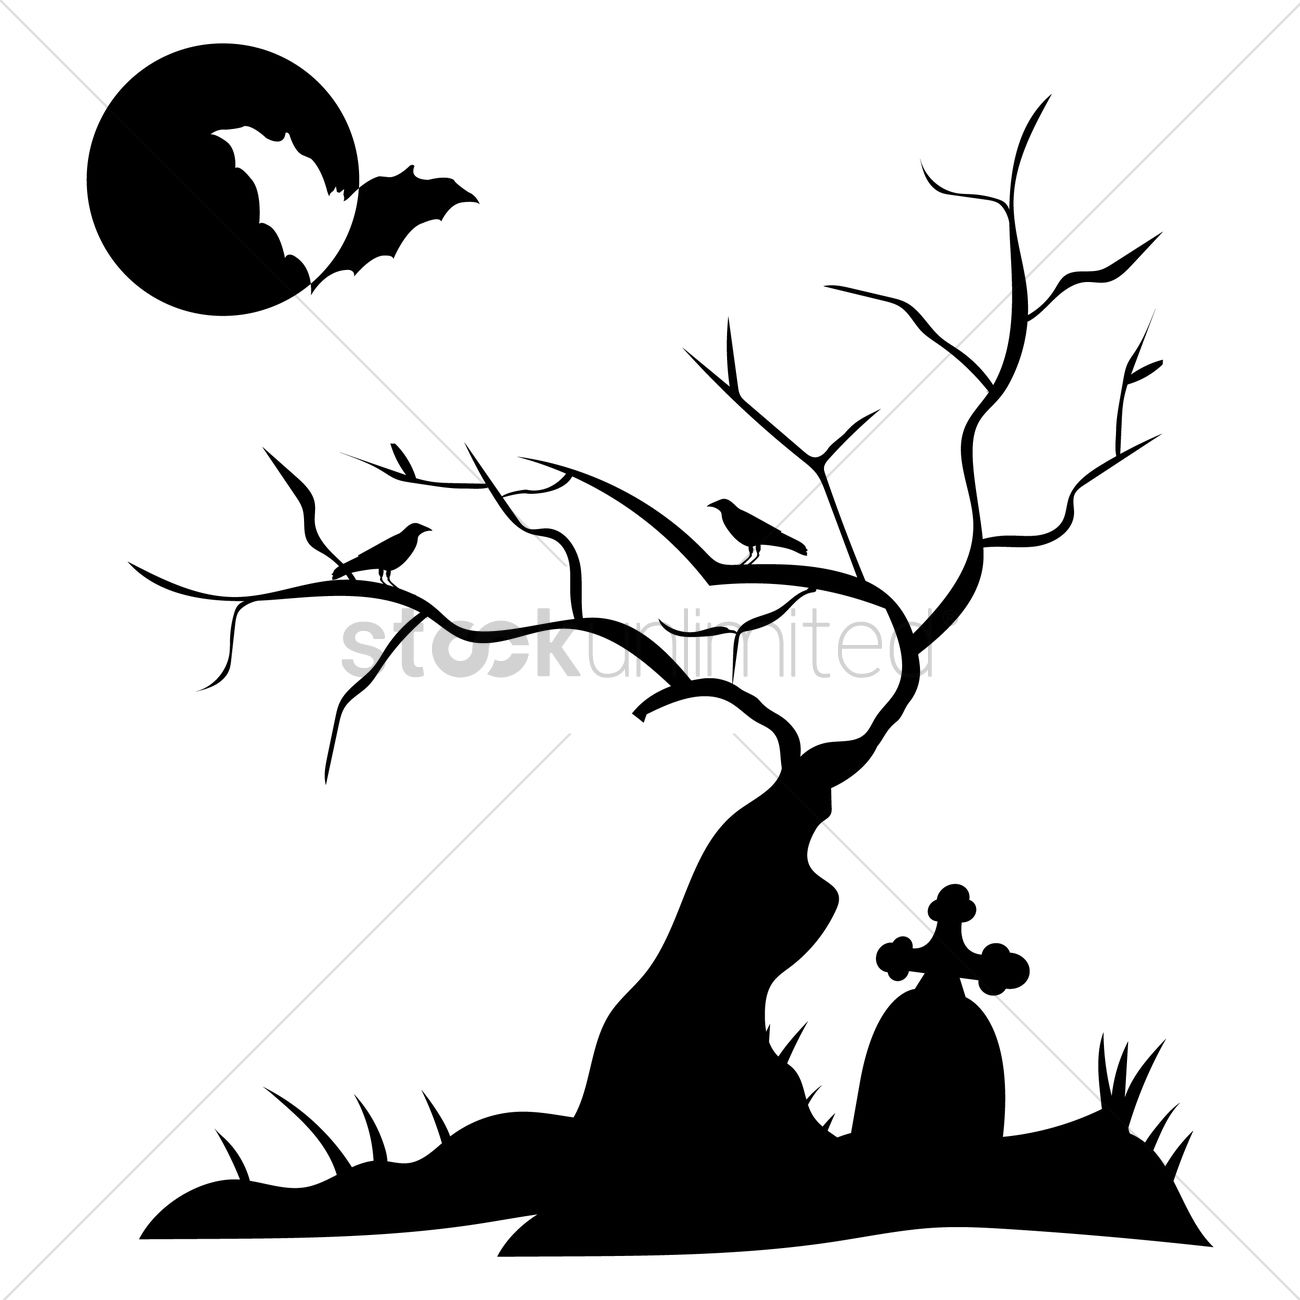 Grave clipart with tree.